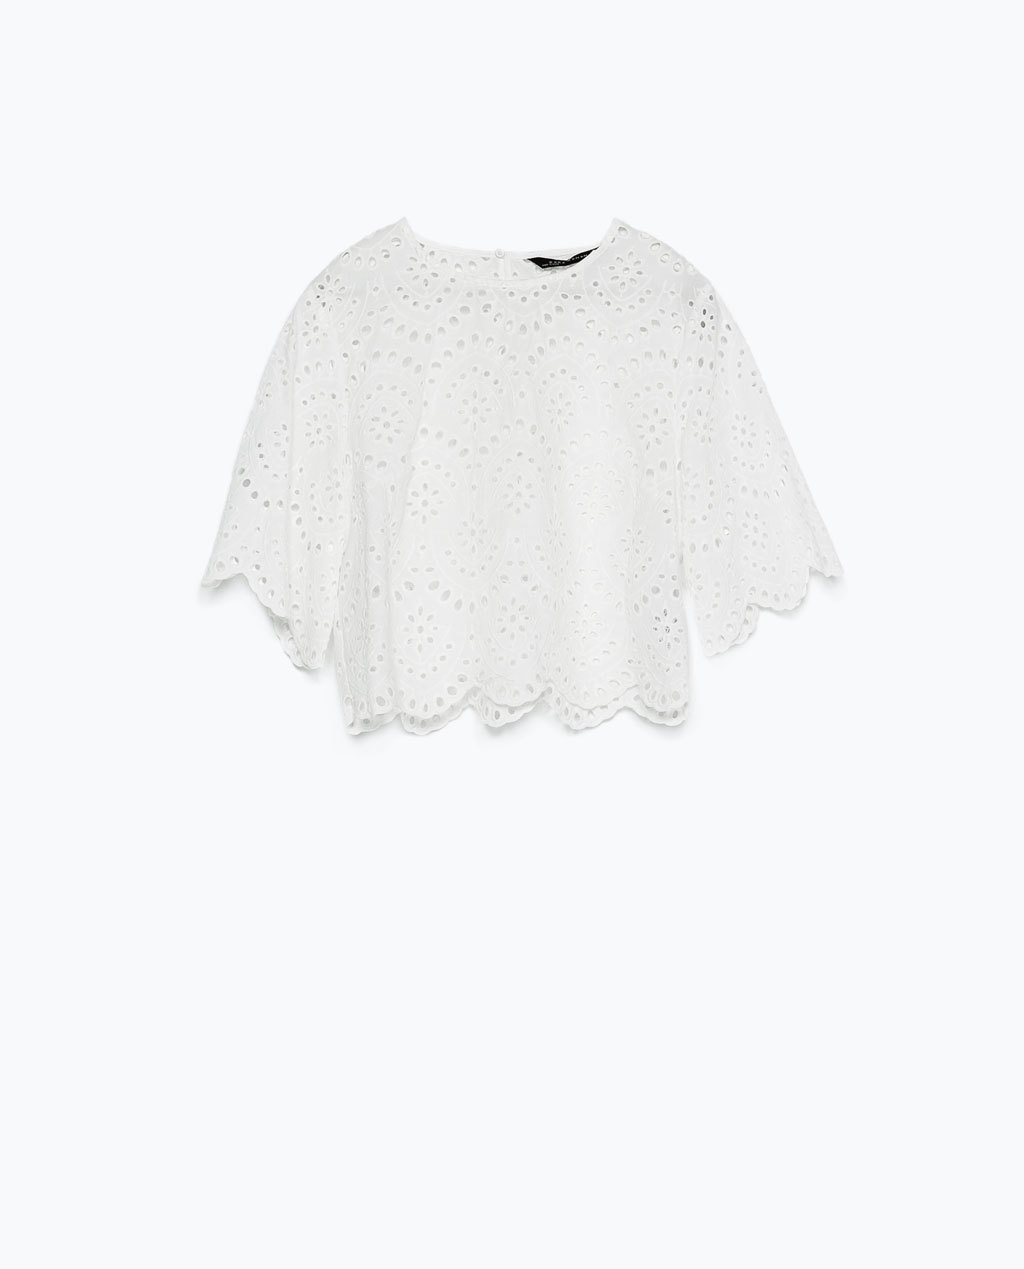 Cropped Embroidered Laser Cut Top - pattern: plain; length: cropped; predominant colour: white; occasions: casual; style: top; fibres: cotton - 100%; fit: straight cut; neckline: crew; sleeve length: short sleeve; sleeve style: standard; texture group: cotton feel fabrics; pattern type: fabric; season: s/s 2015; wardrobe: basic